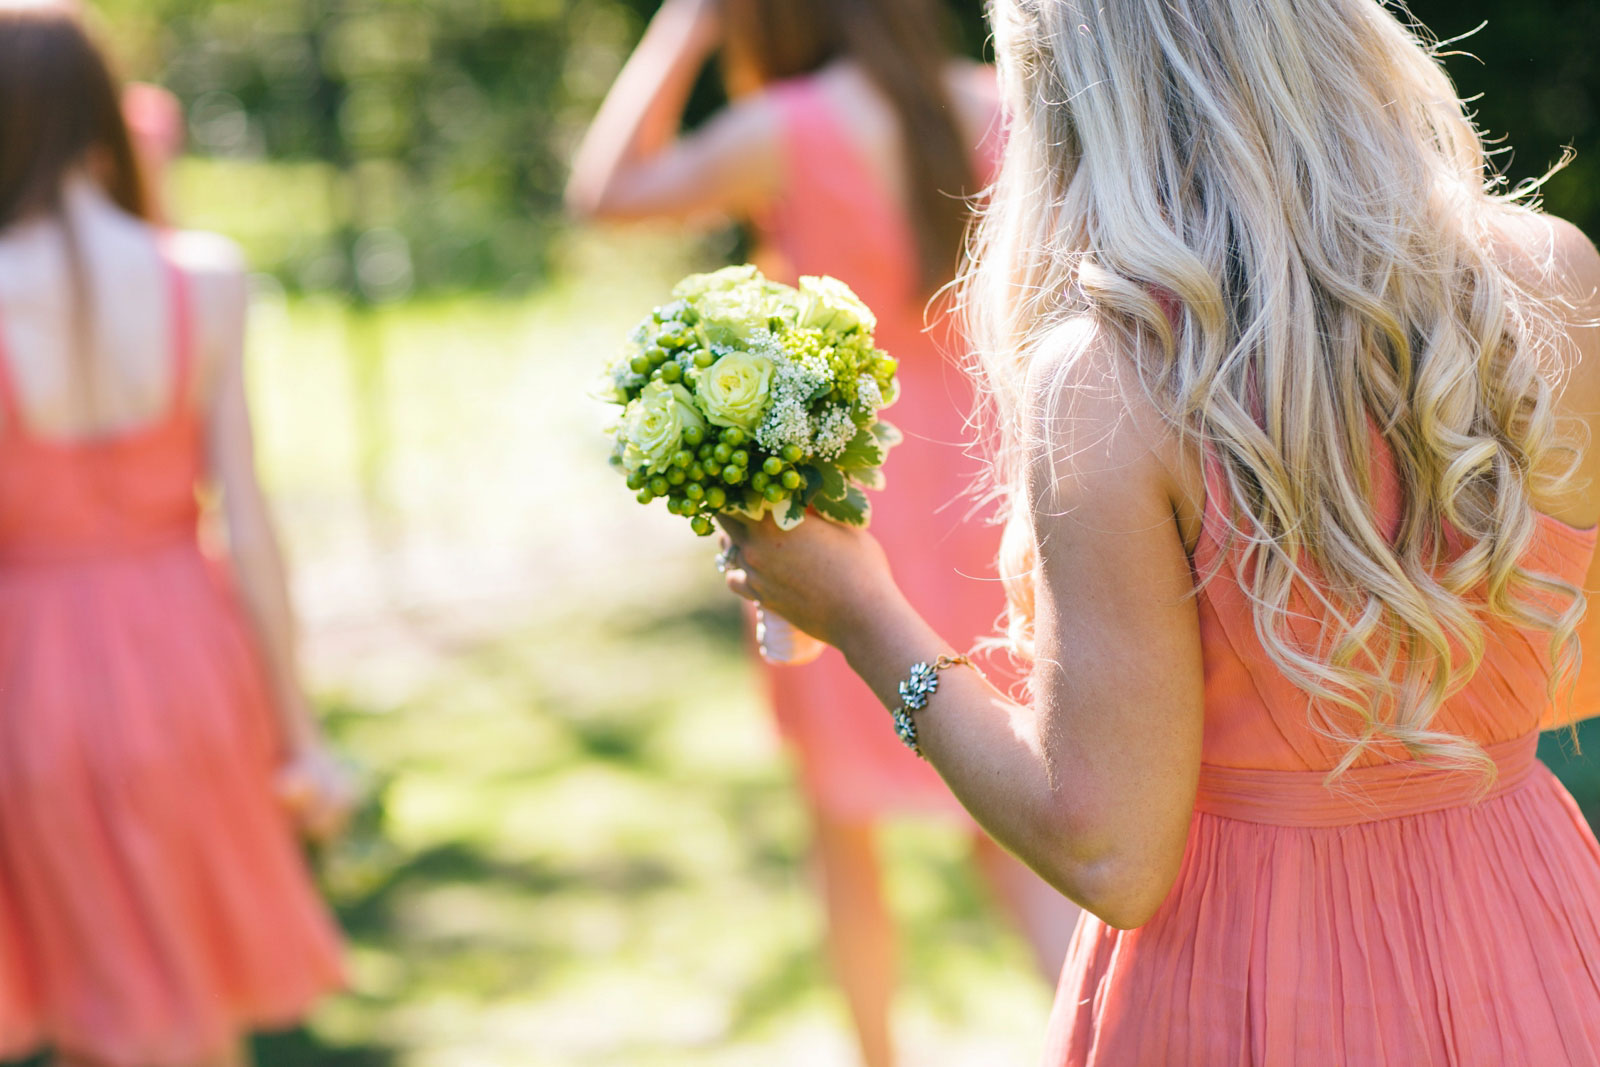 bridesmaid holding bouquet with green roses, baby's breath, and green berries